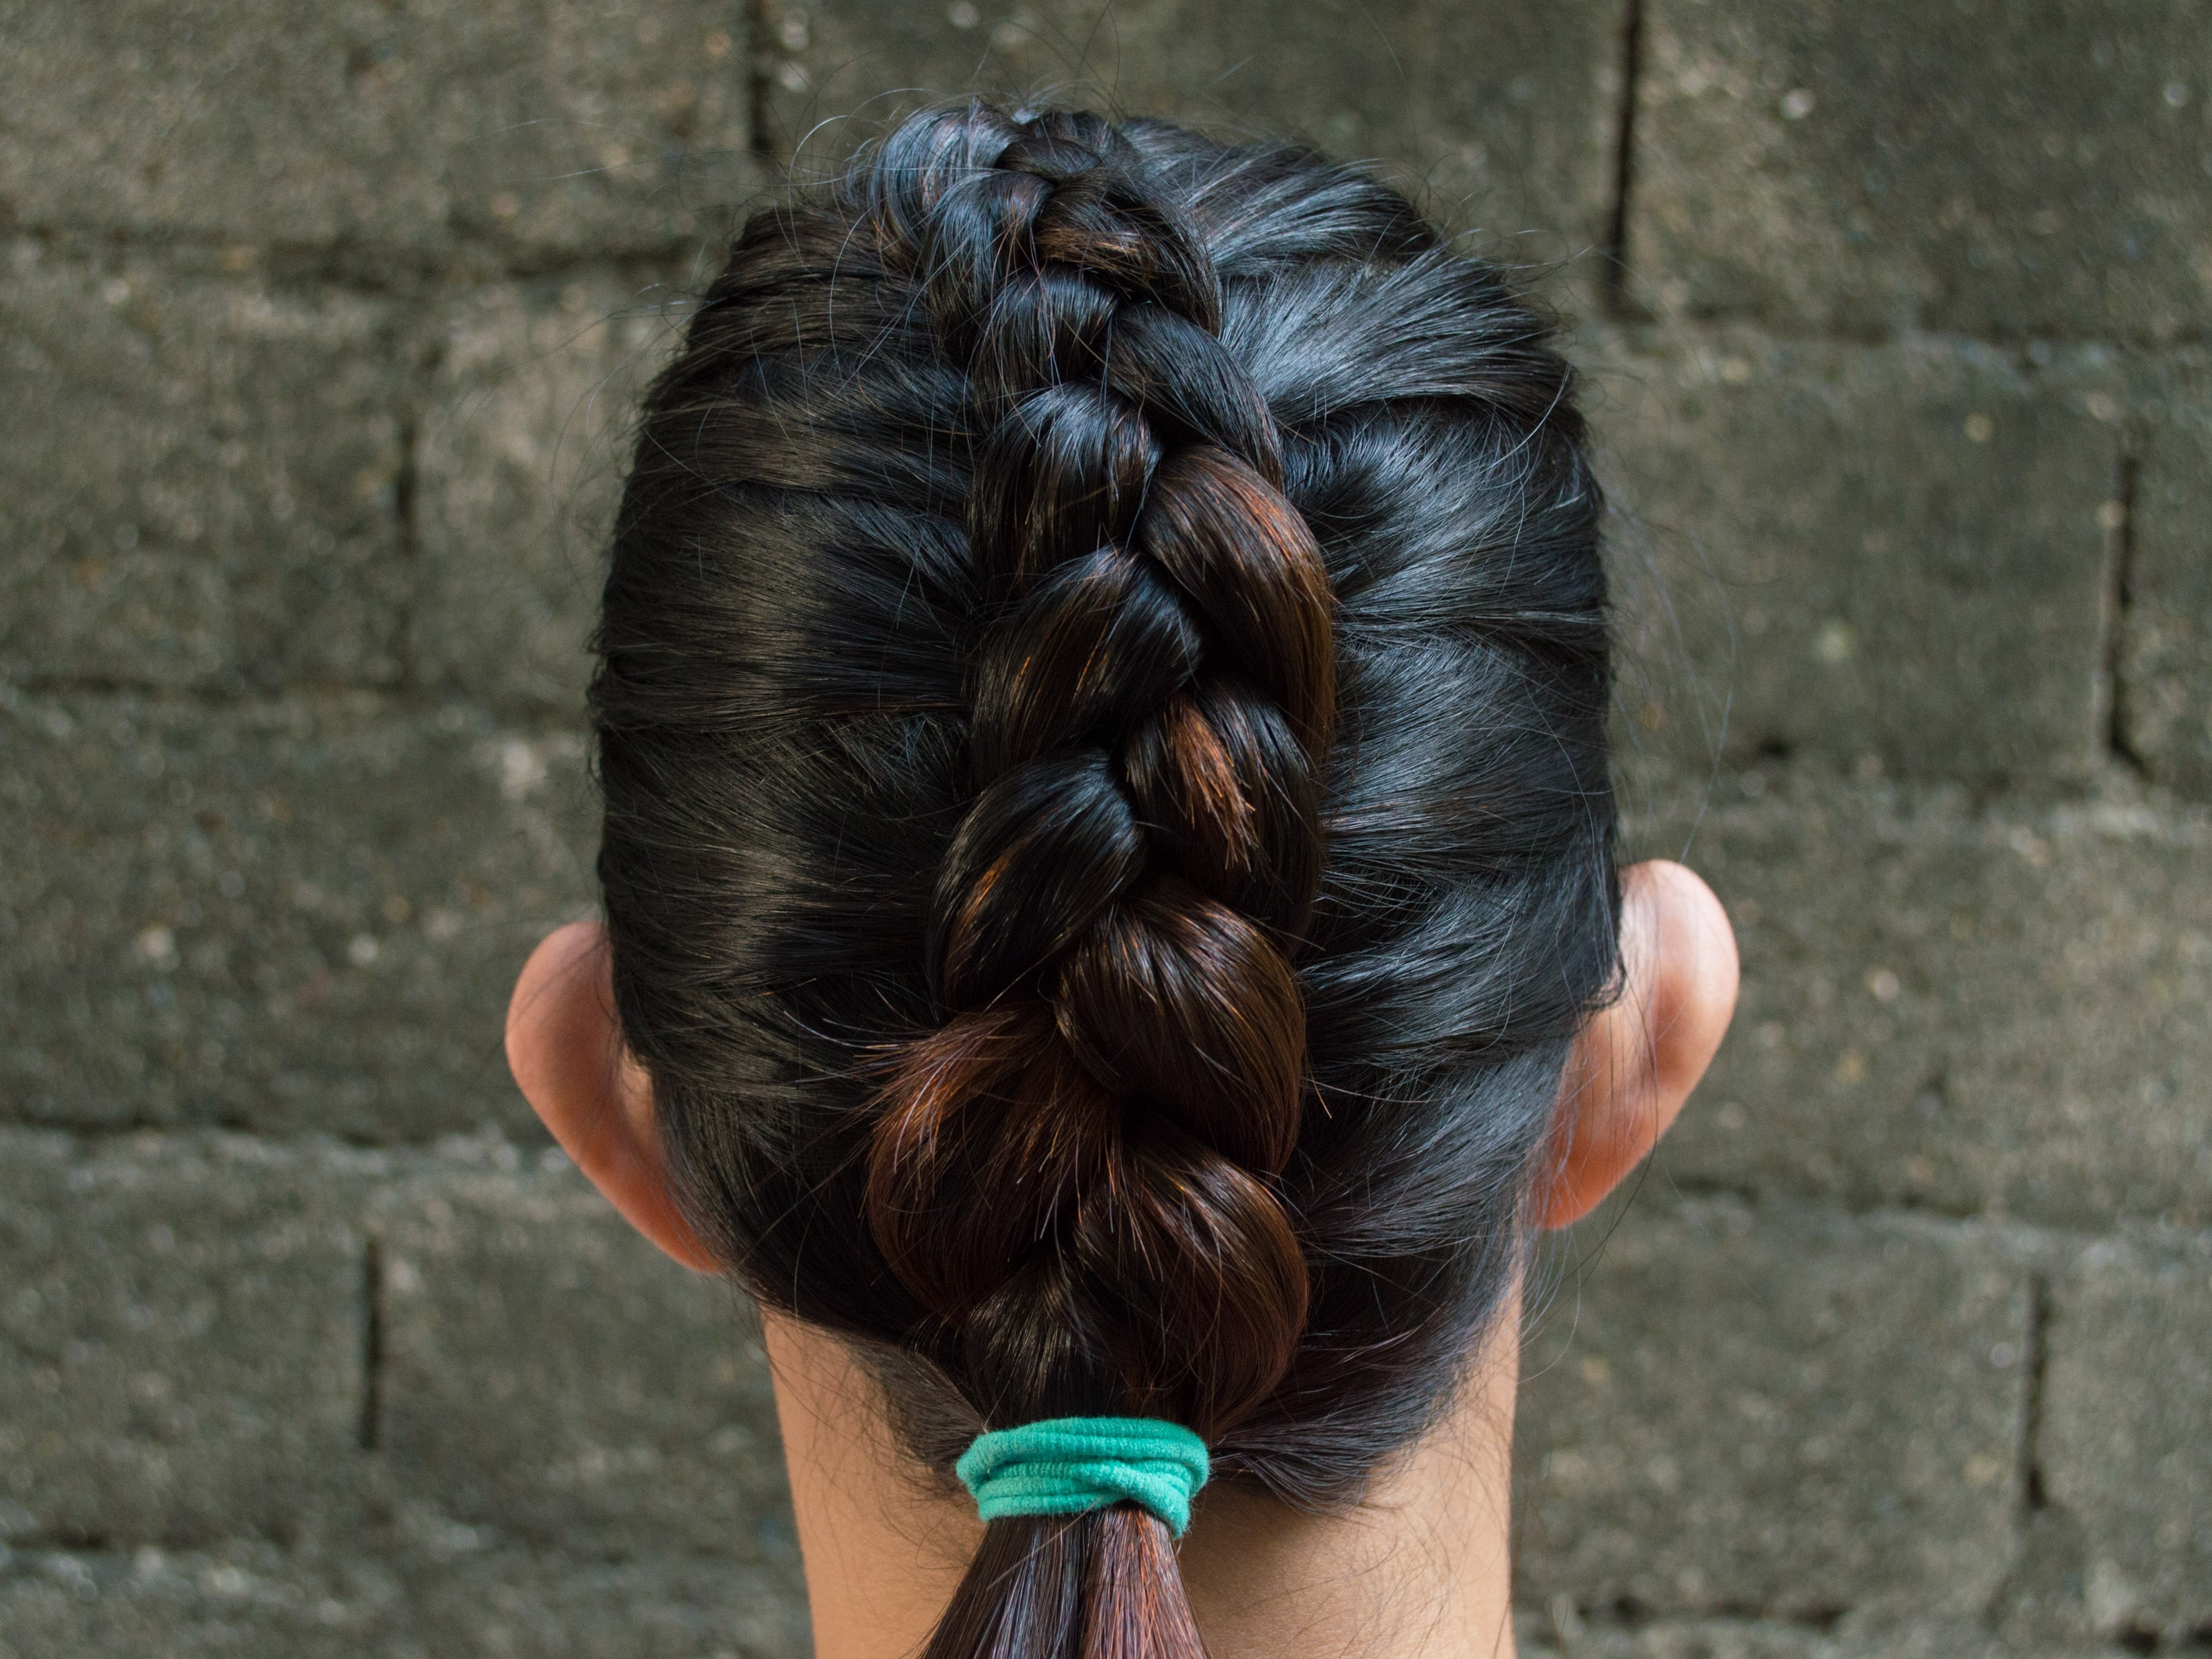 How To Do A Reverse French Braid: 6 Steps (with Pictures) Intended For Fashionable Reverse French Braid Ponytail Hairstyles (View 6 of 20)